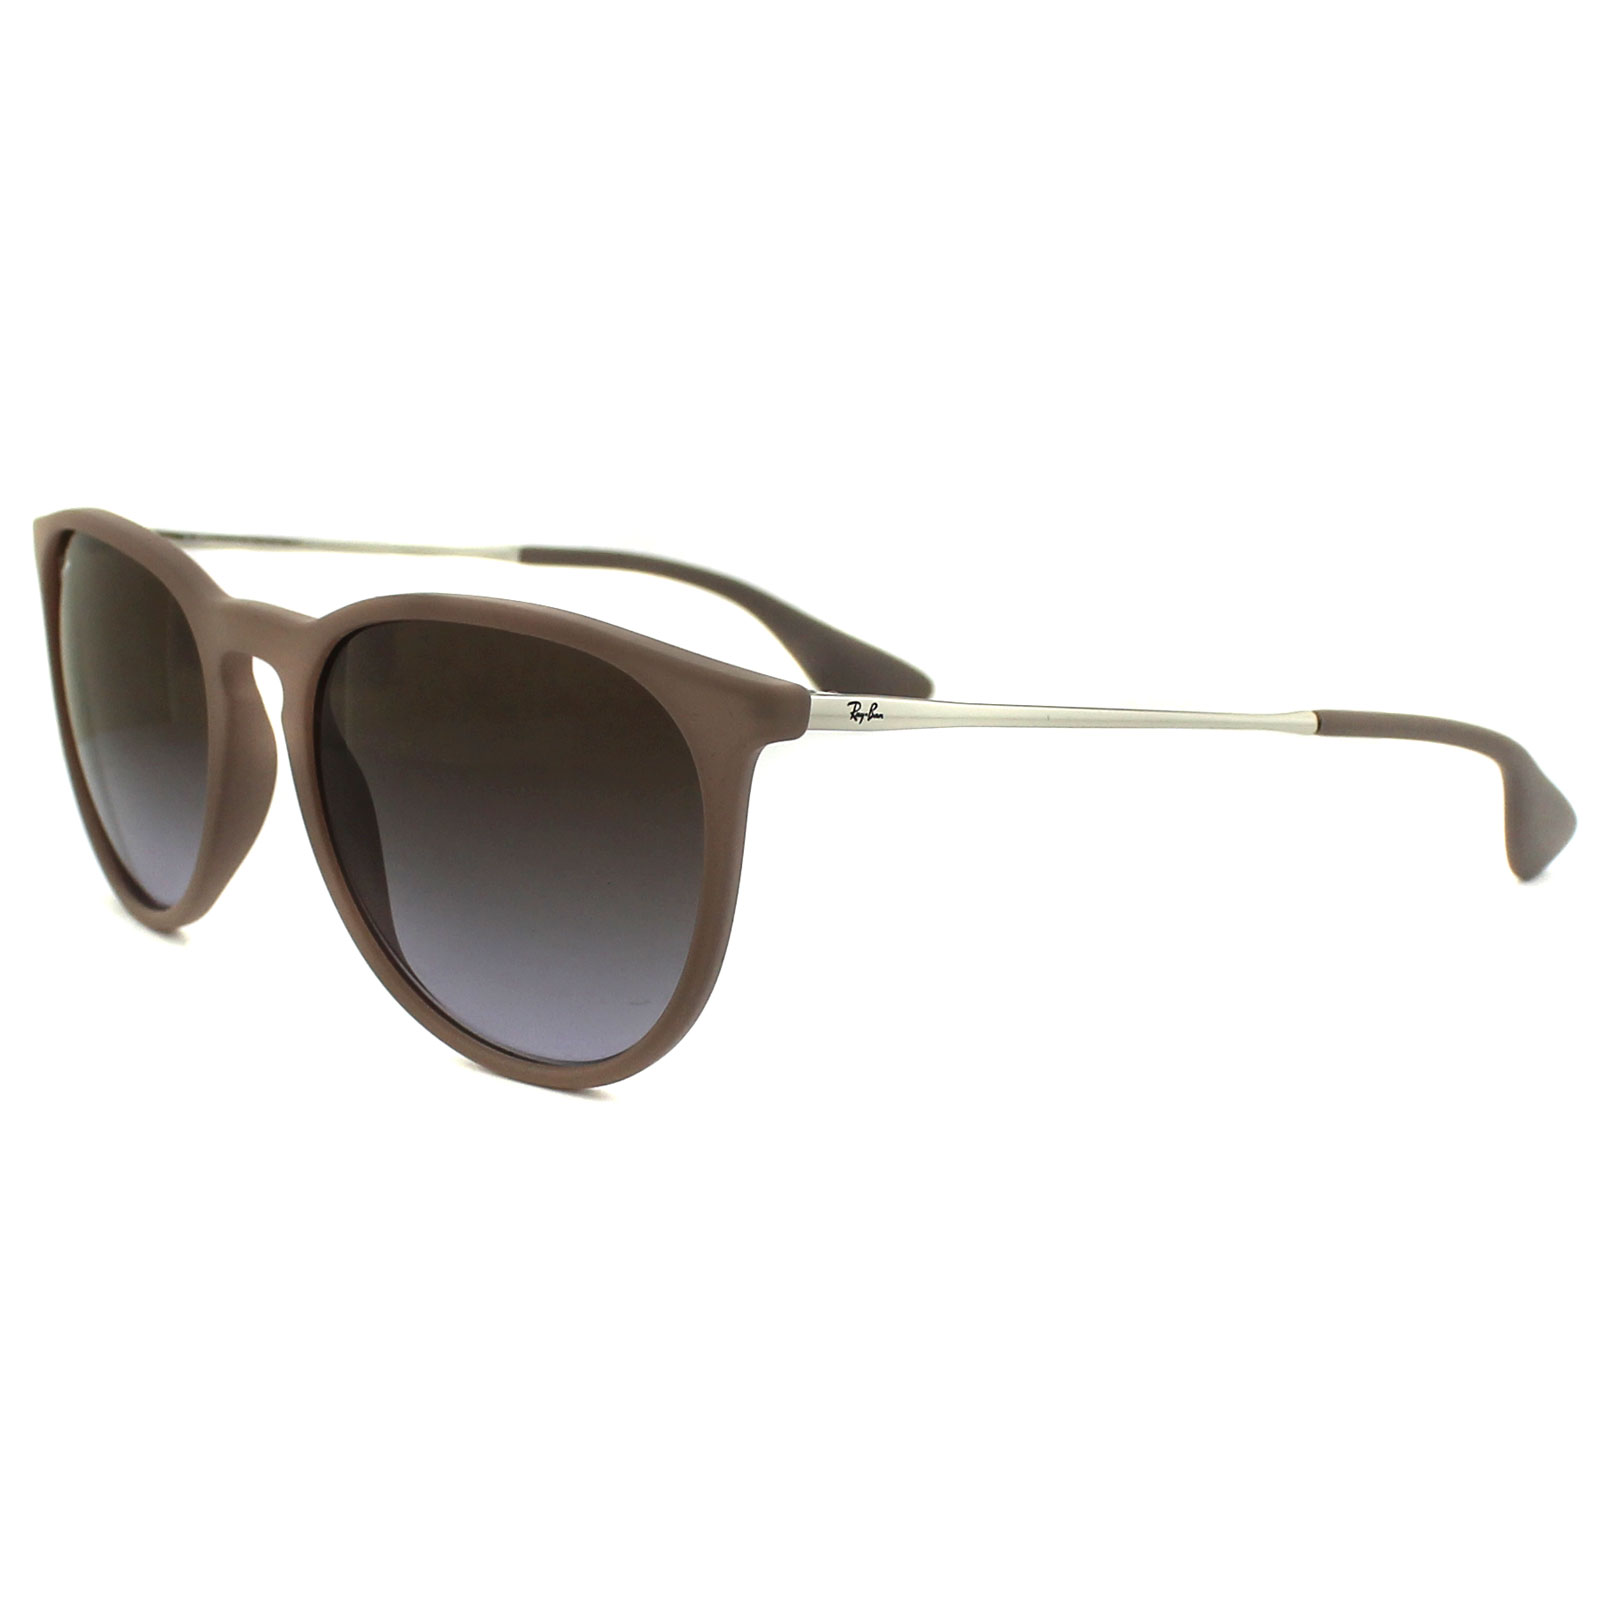 4d48c53b875c Sentinel Ray-Ban Sunglasses 4171 600068 Dark Rubber Sand Brown Gradient